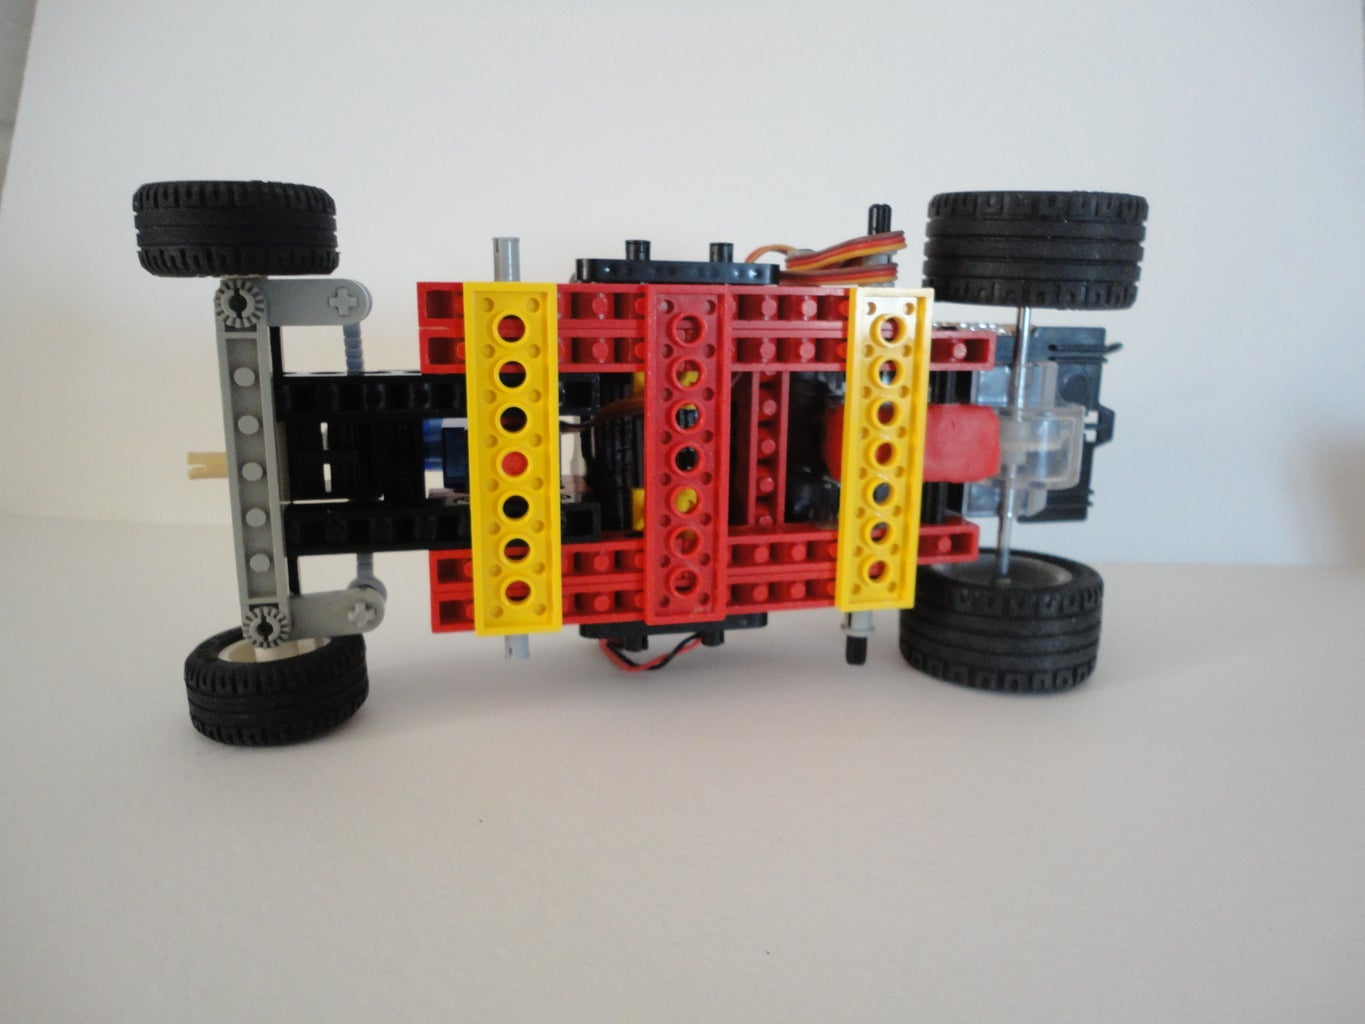 Arduino, Motor Control and XBee